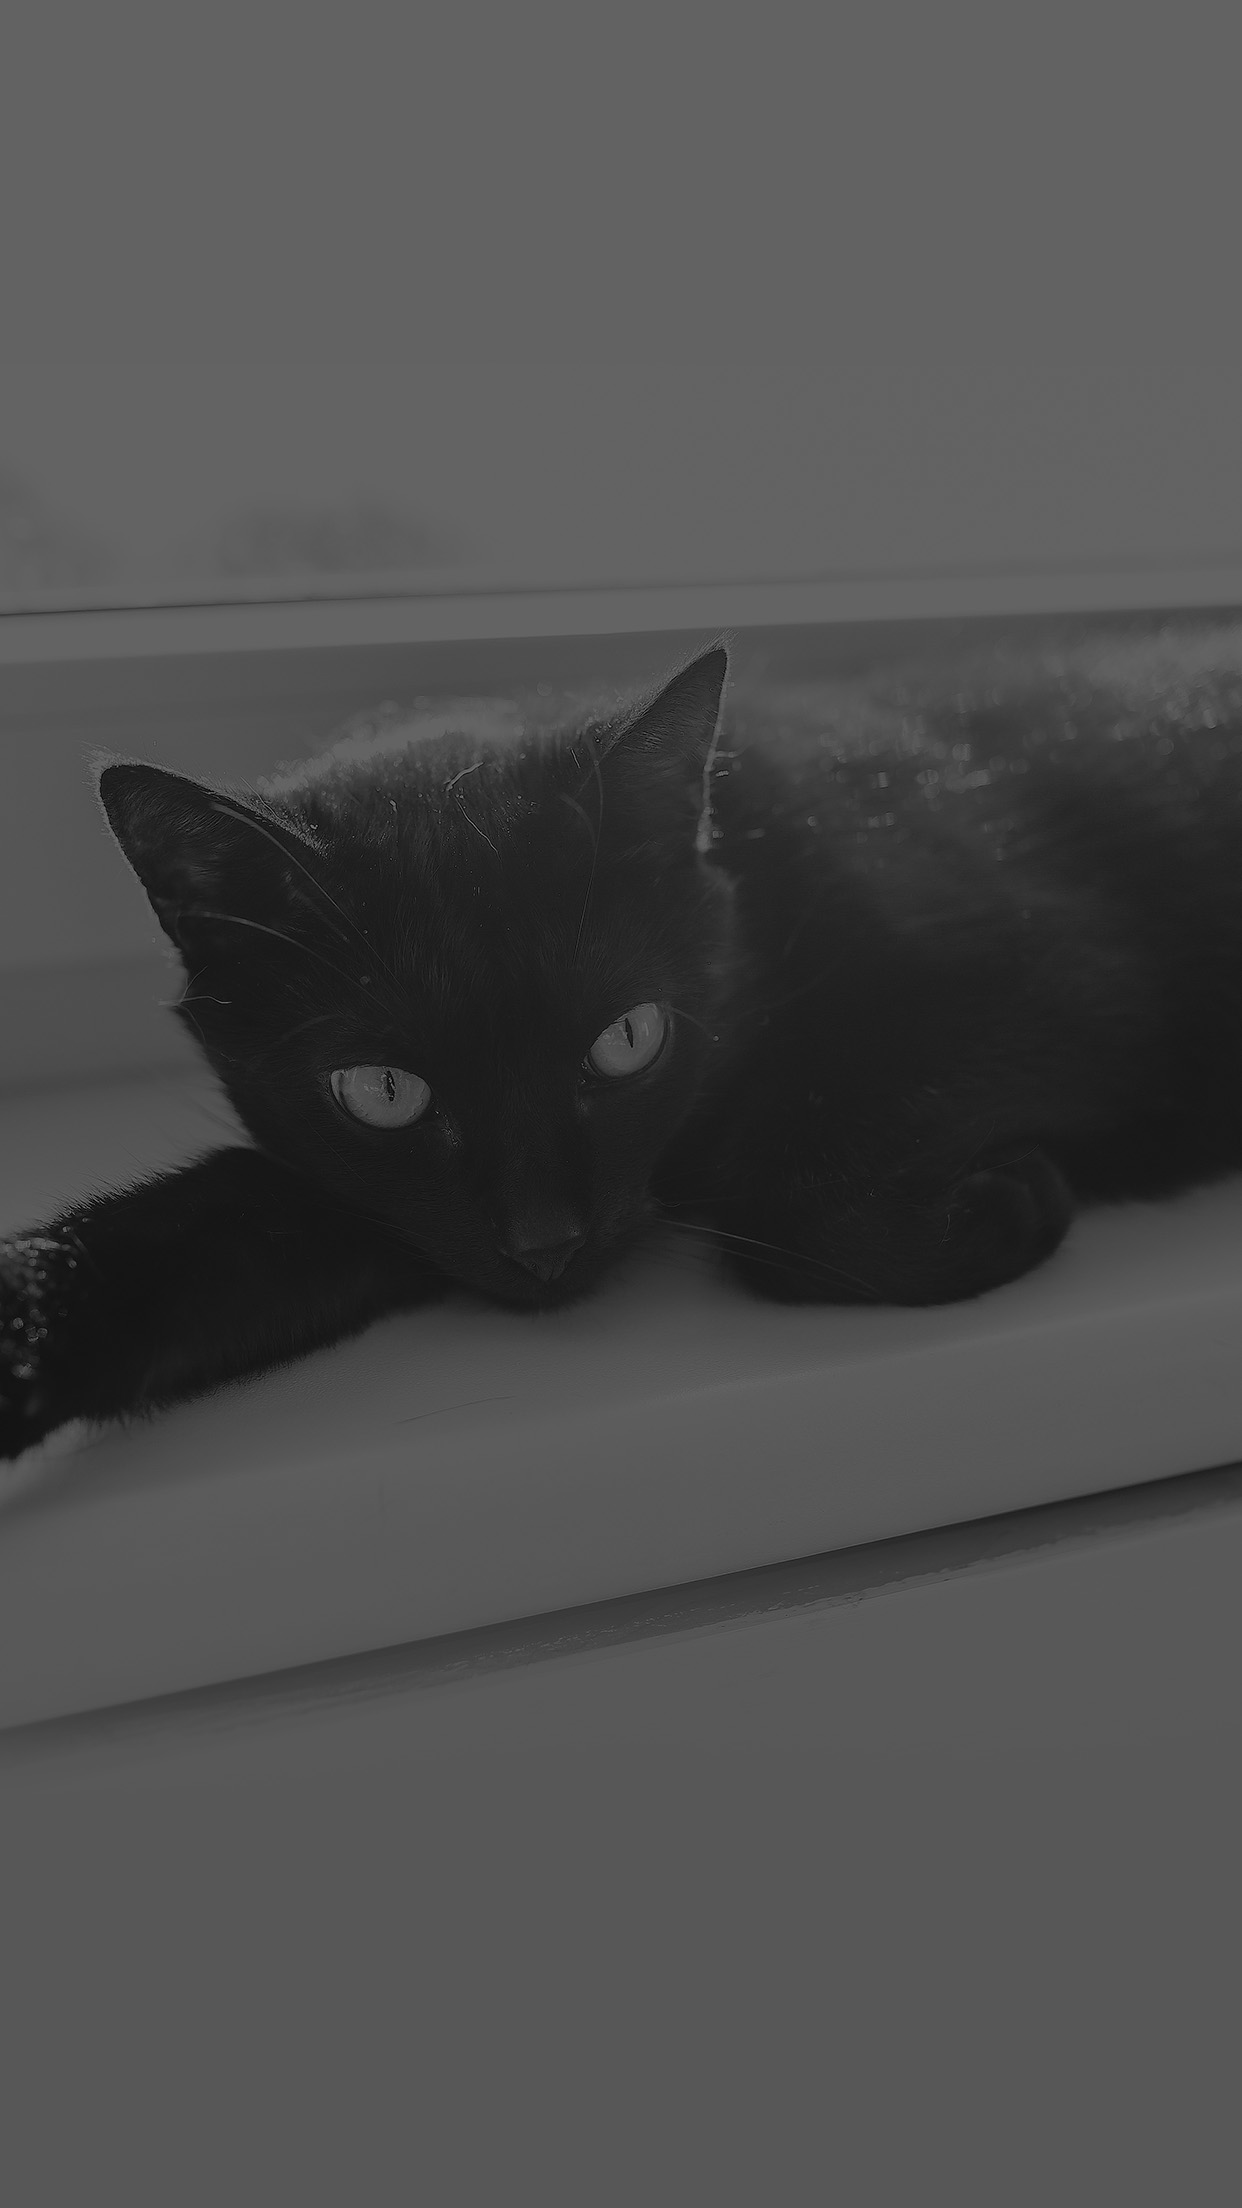 Black Cat Animal Cute Watching Dark Bw Android Wallpaper Android